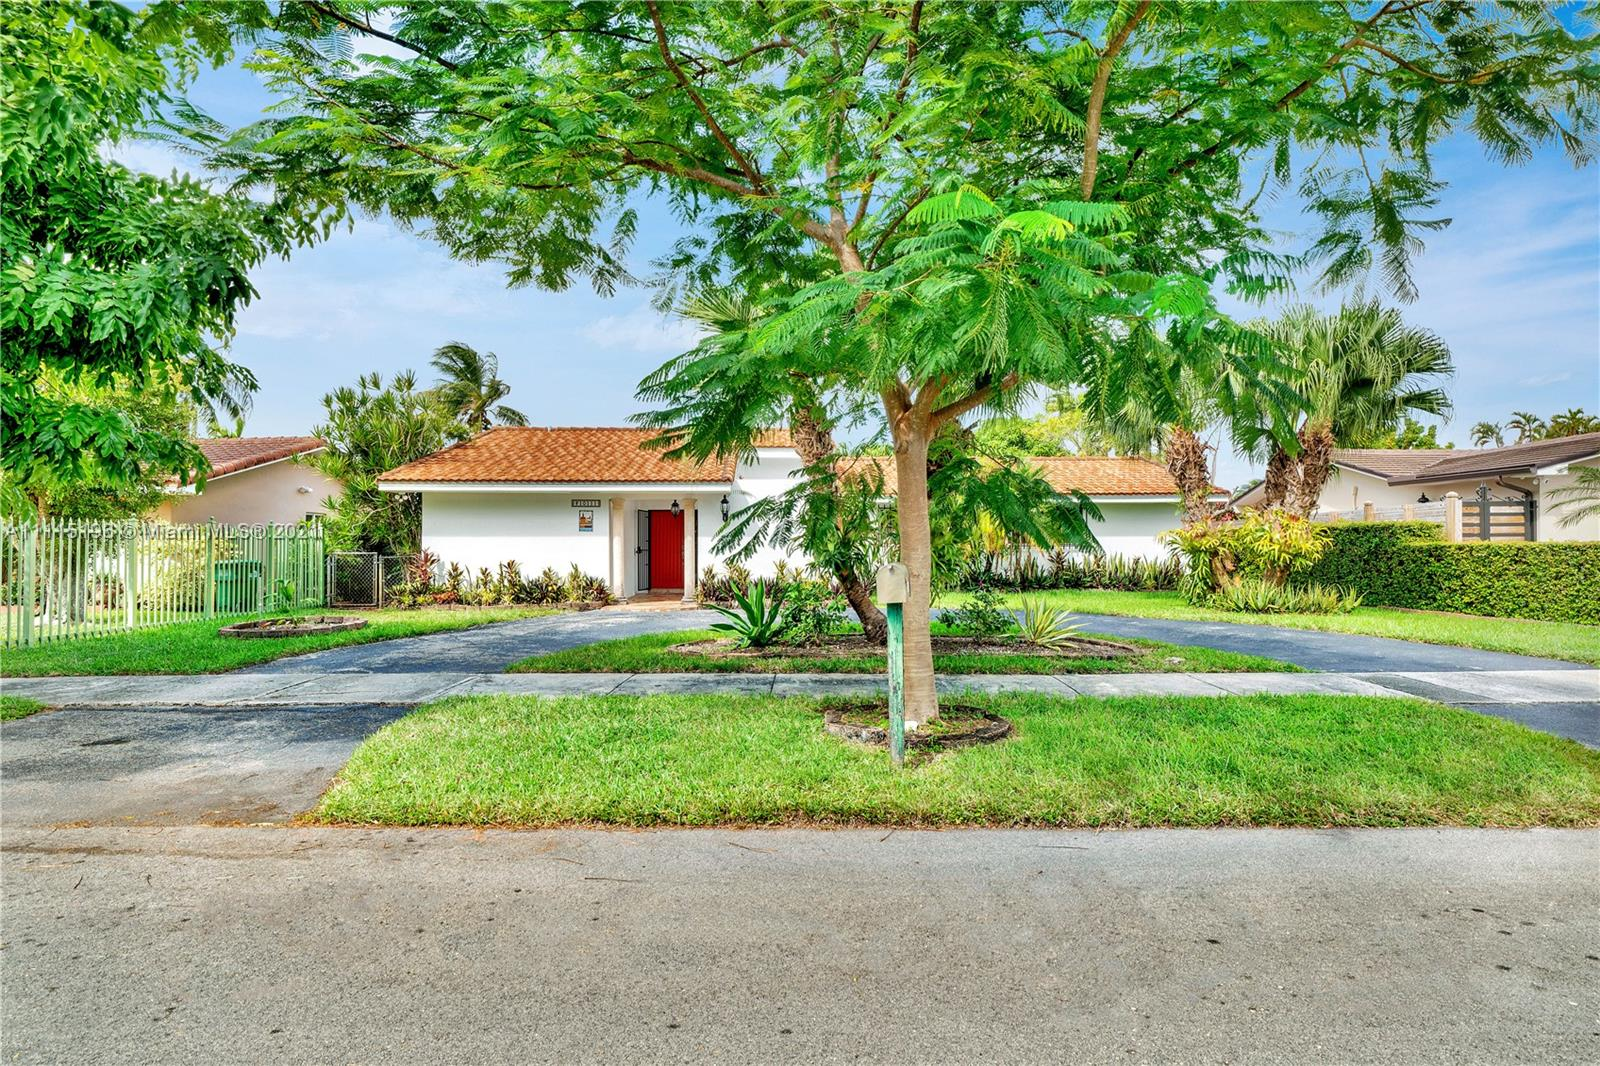 Single Family Home For Sale SEVILLA HEIGHTS1,802 Sqft